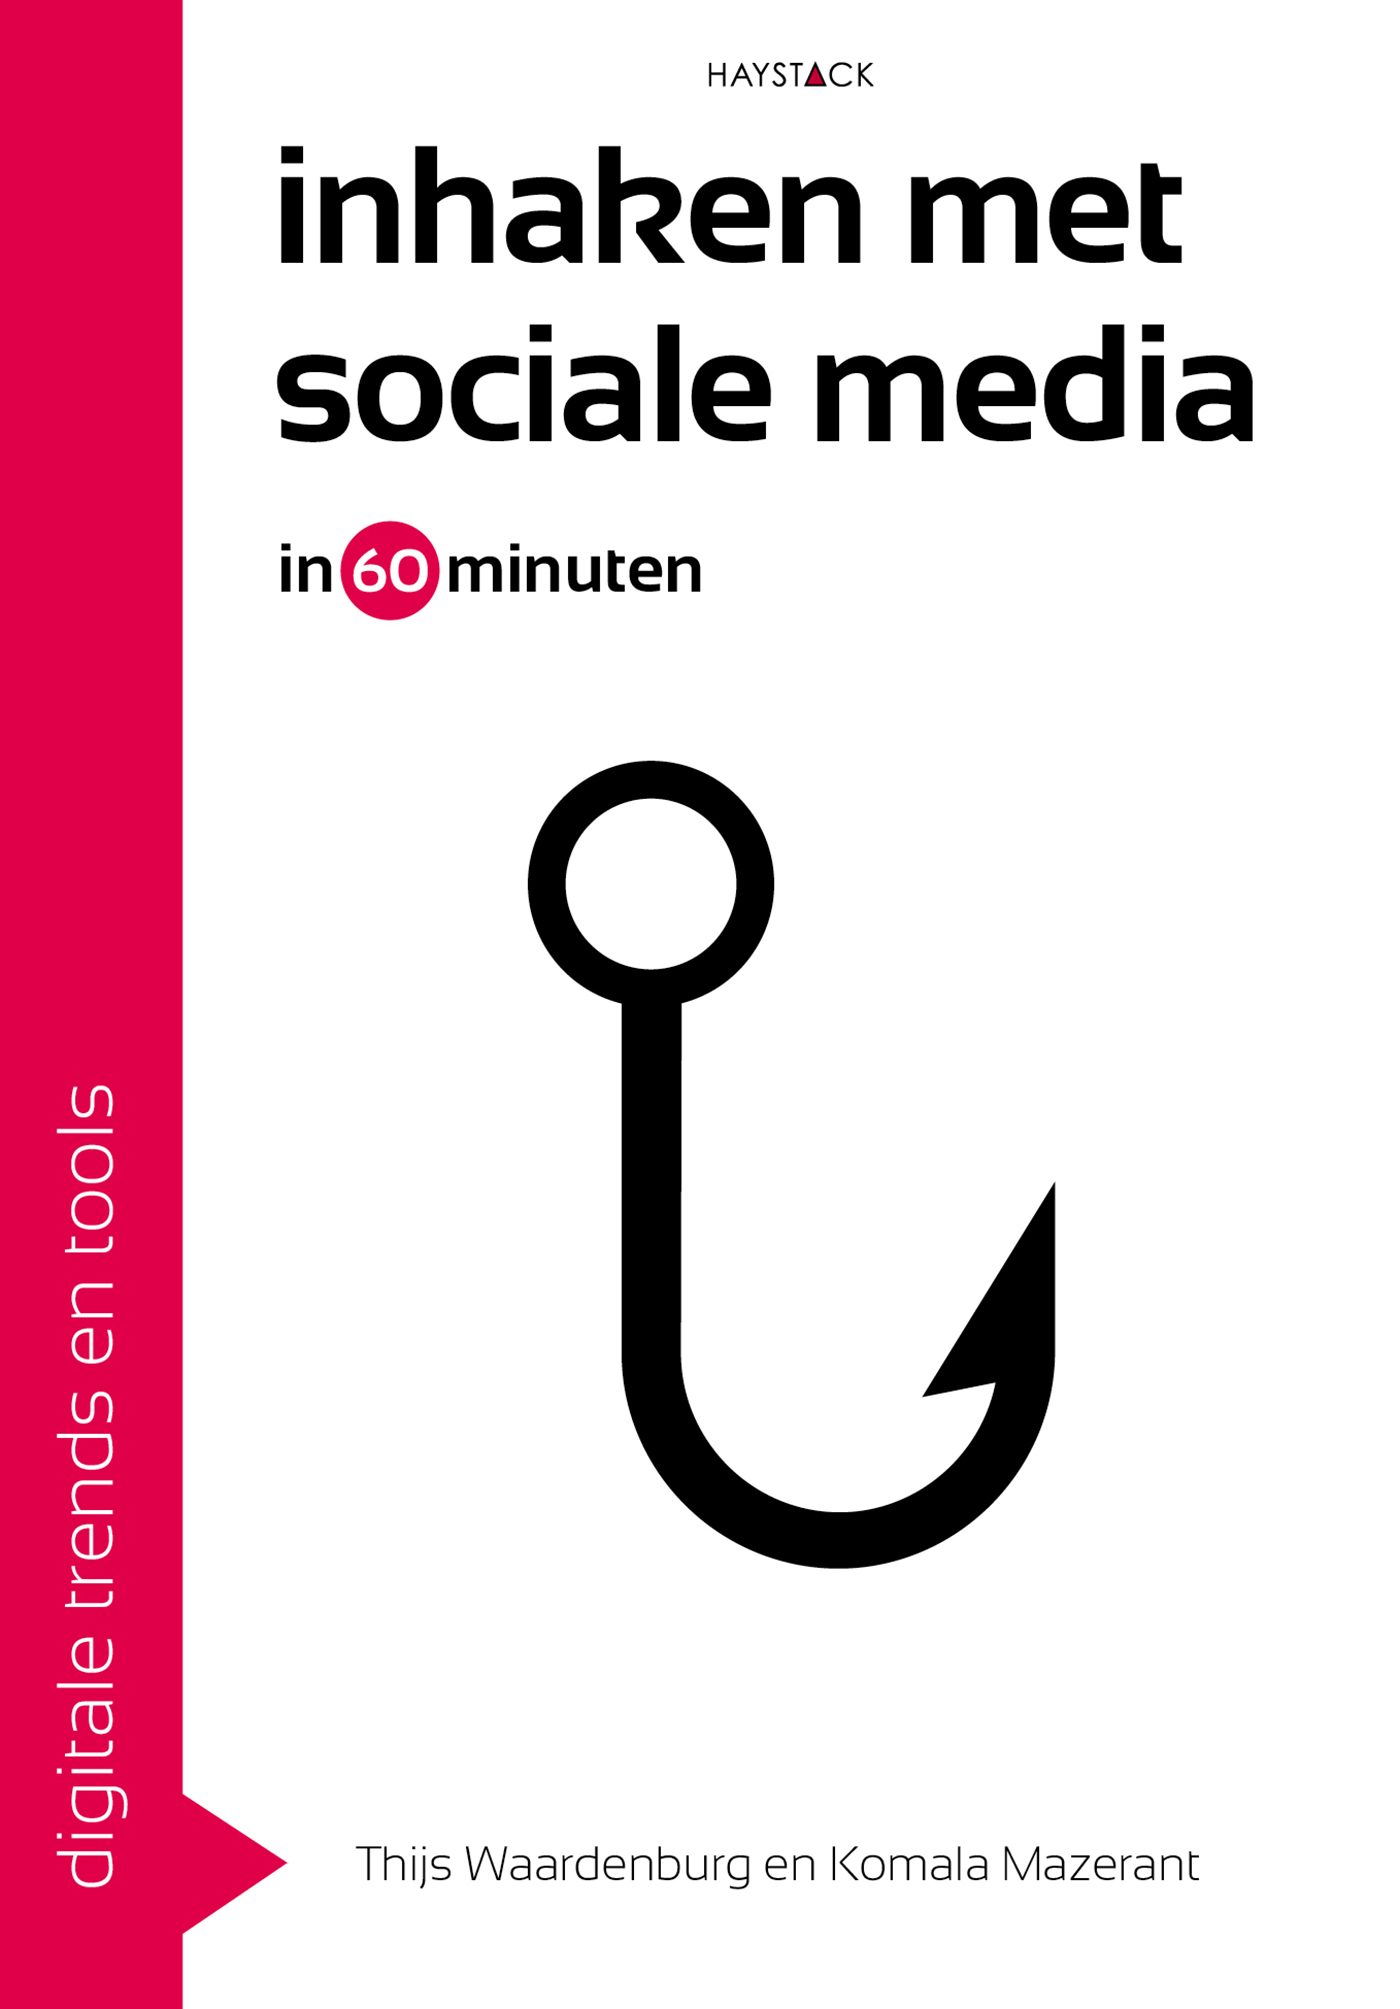 Digitale trends en tools in 60 minuten: Inhaken met sociale media in 60 minuten